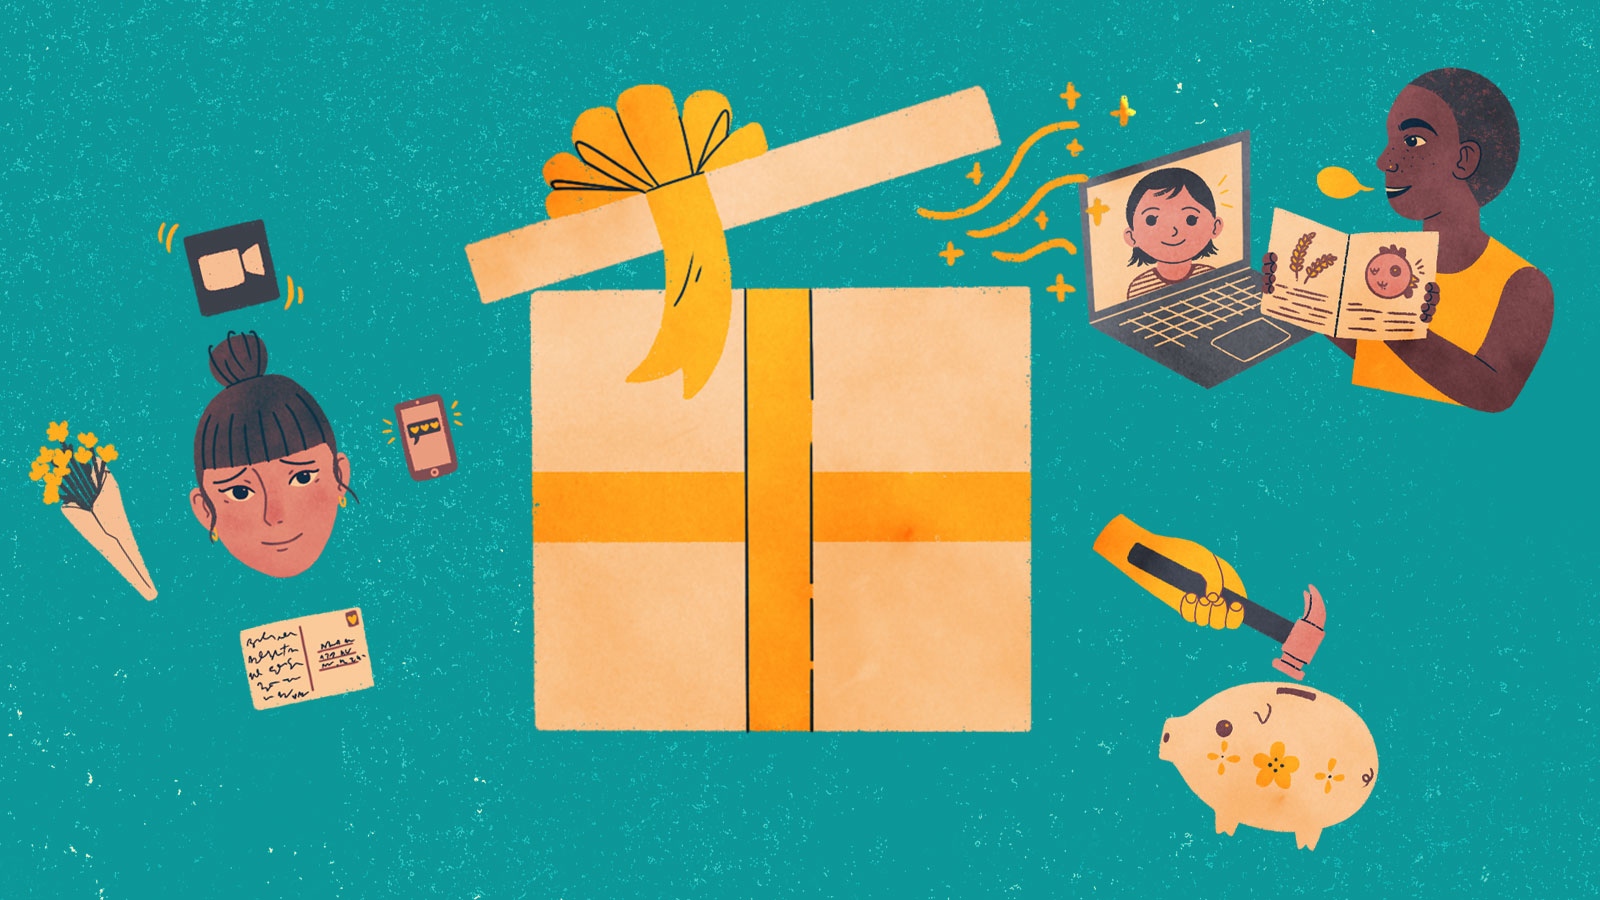 The buy-nothing gift guide that will get you through 2021